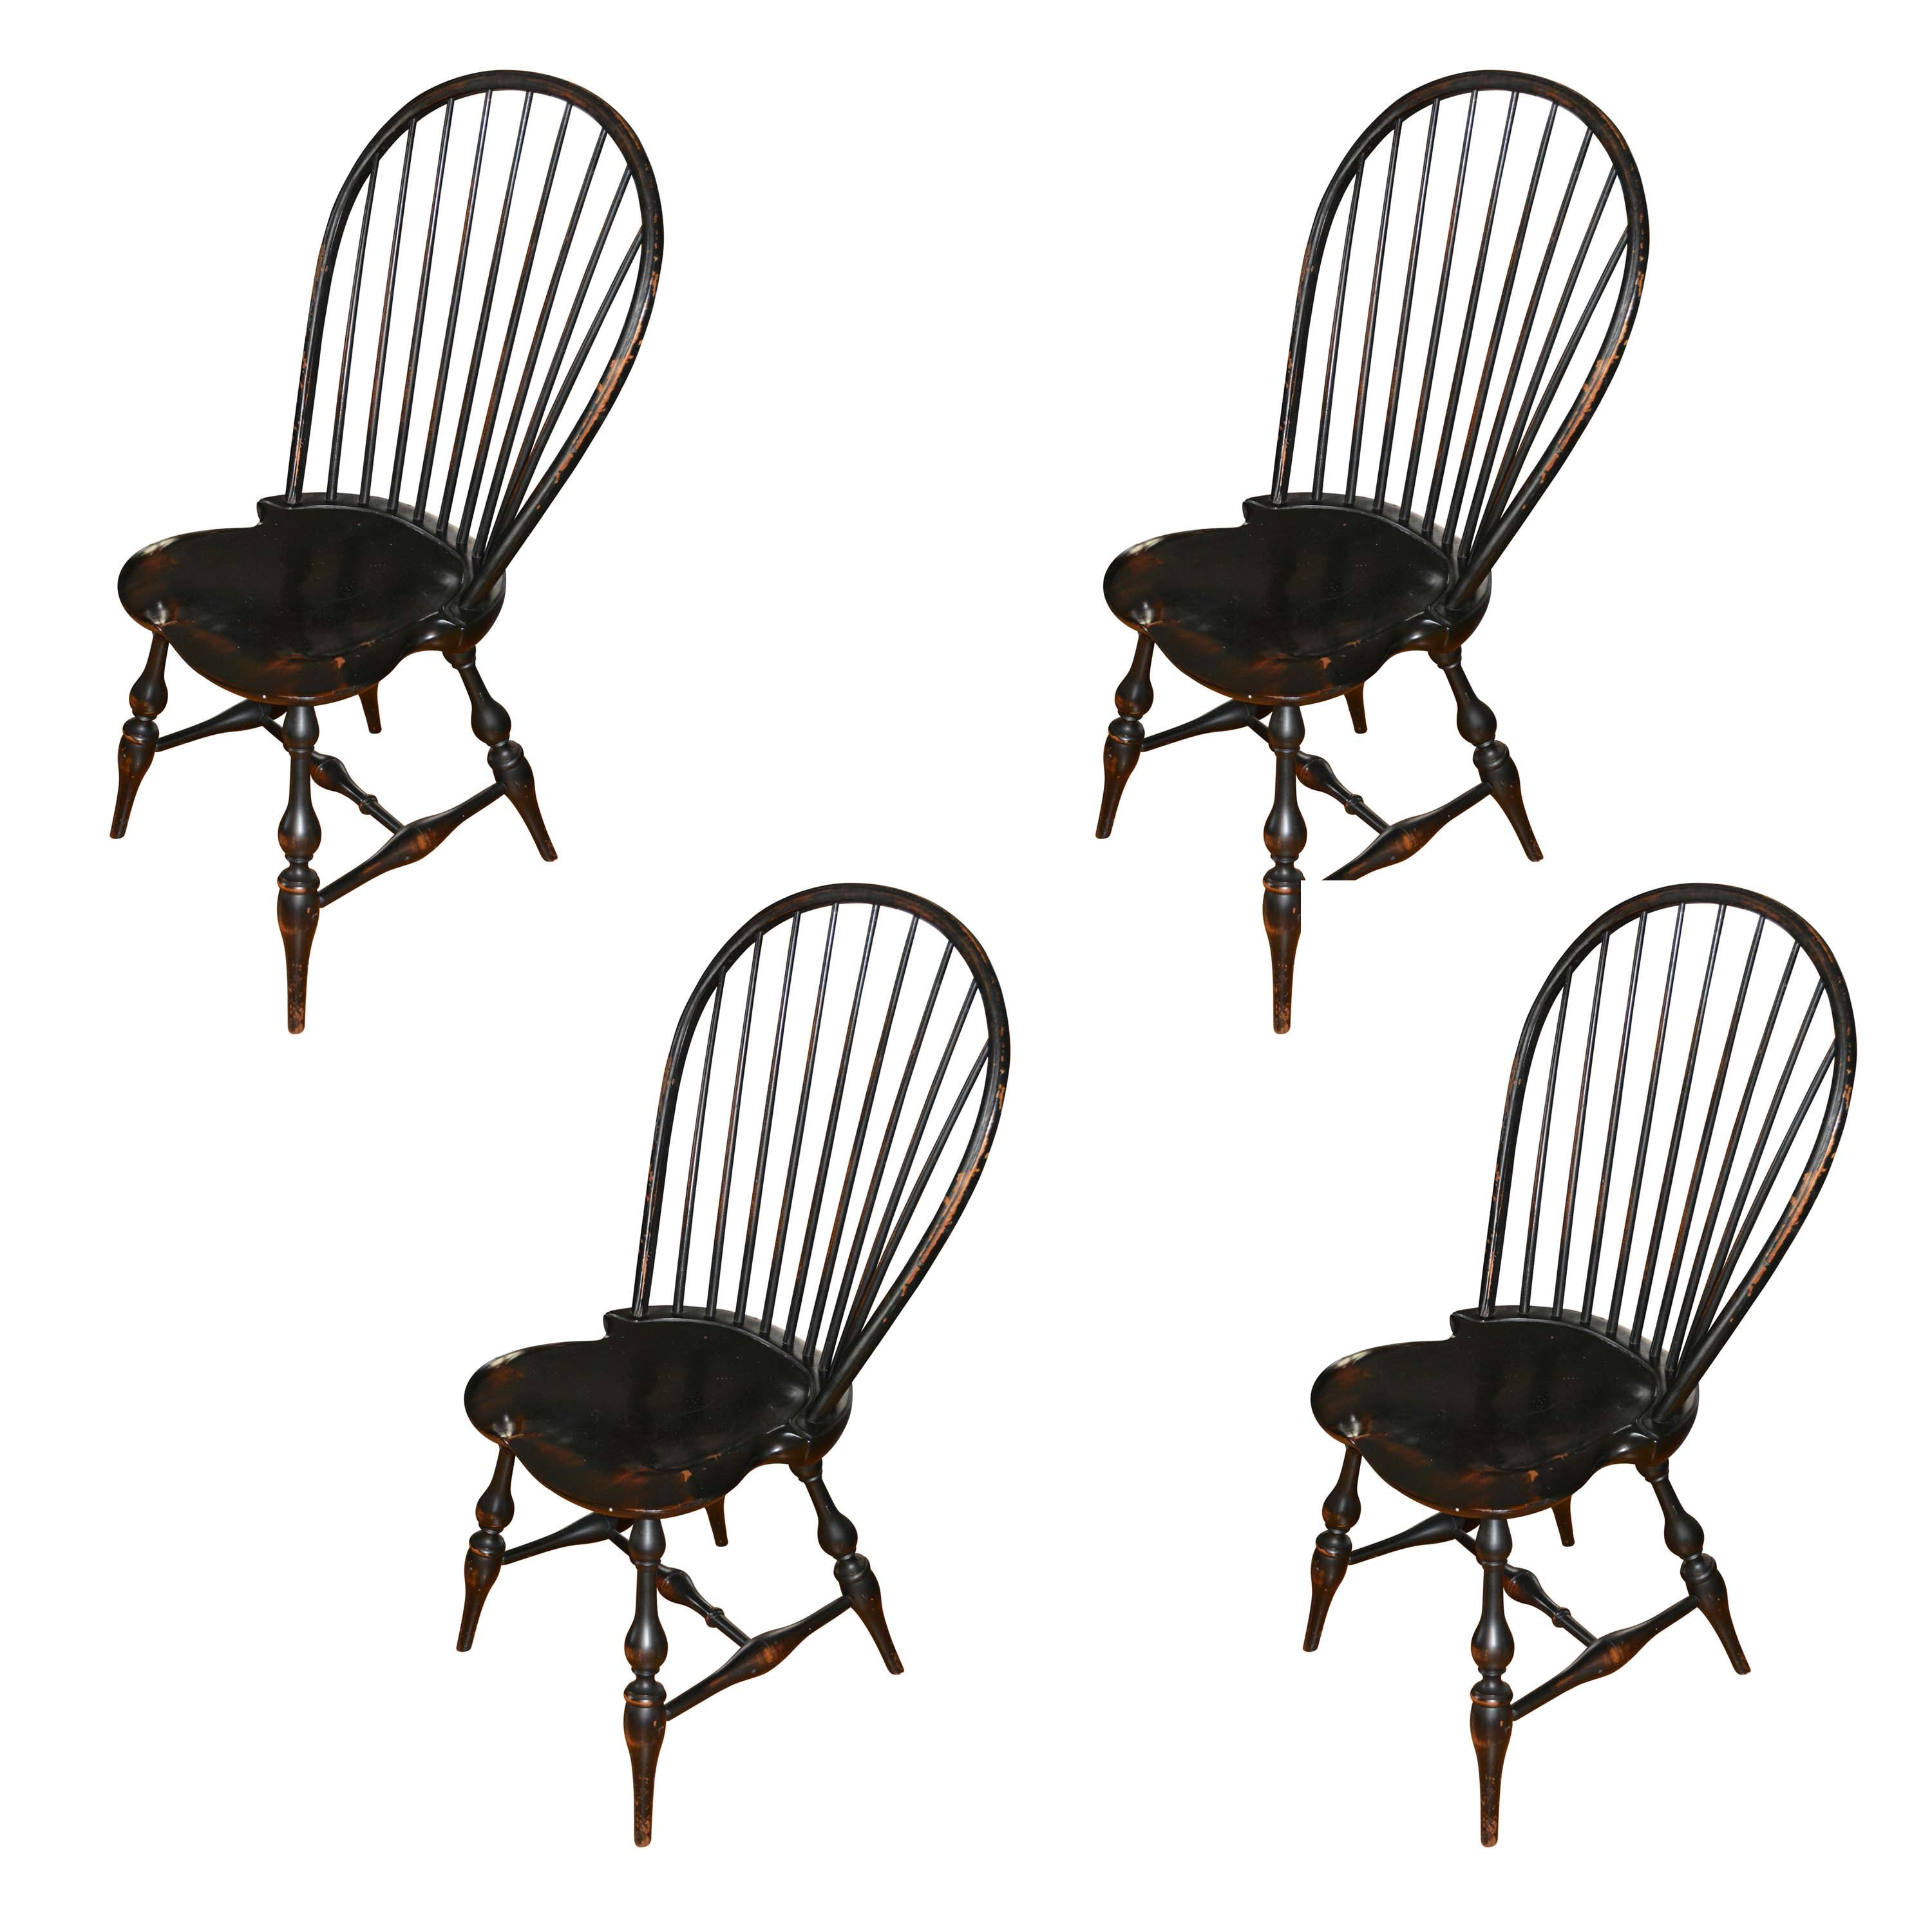 Set of Vintage Painted Windsor Chairs by D.R. Dimes